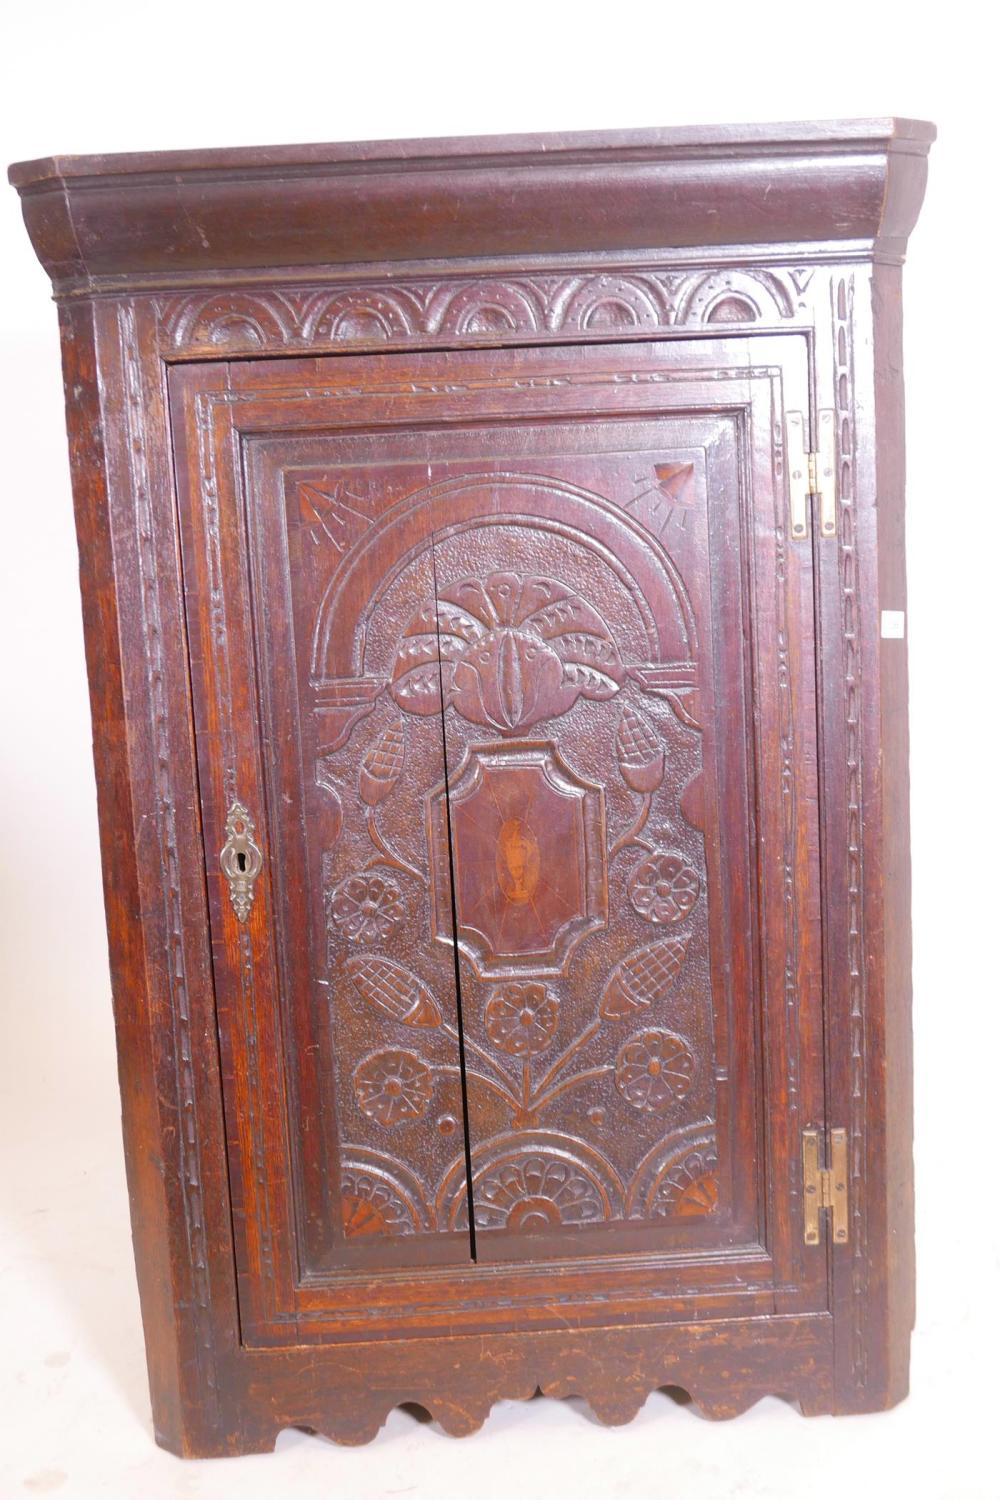 An C18th oak hanging corner cupboard with carved and inlaid decoration, 43 - Antique Cabinets For Sale At Online Auction Buy Rare Antique Cabinets